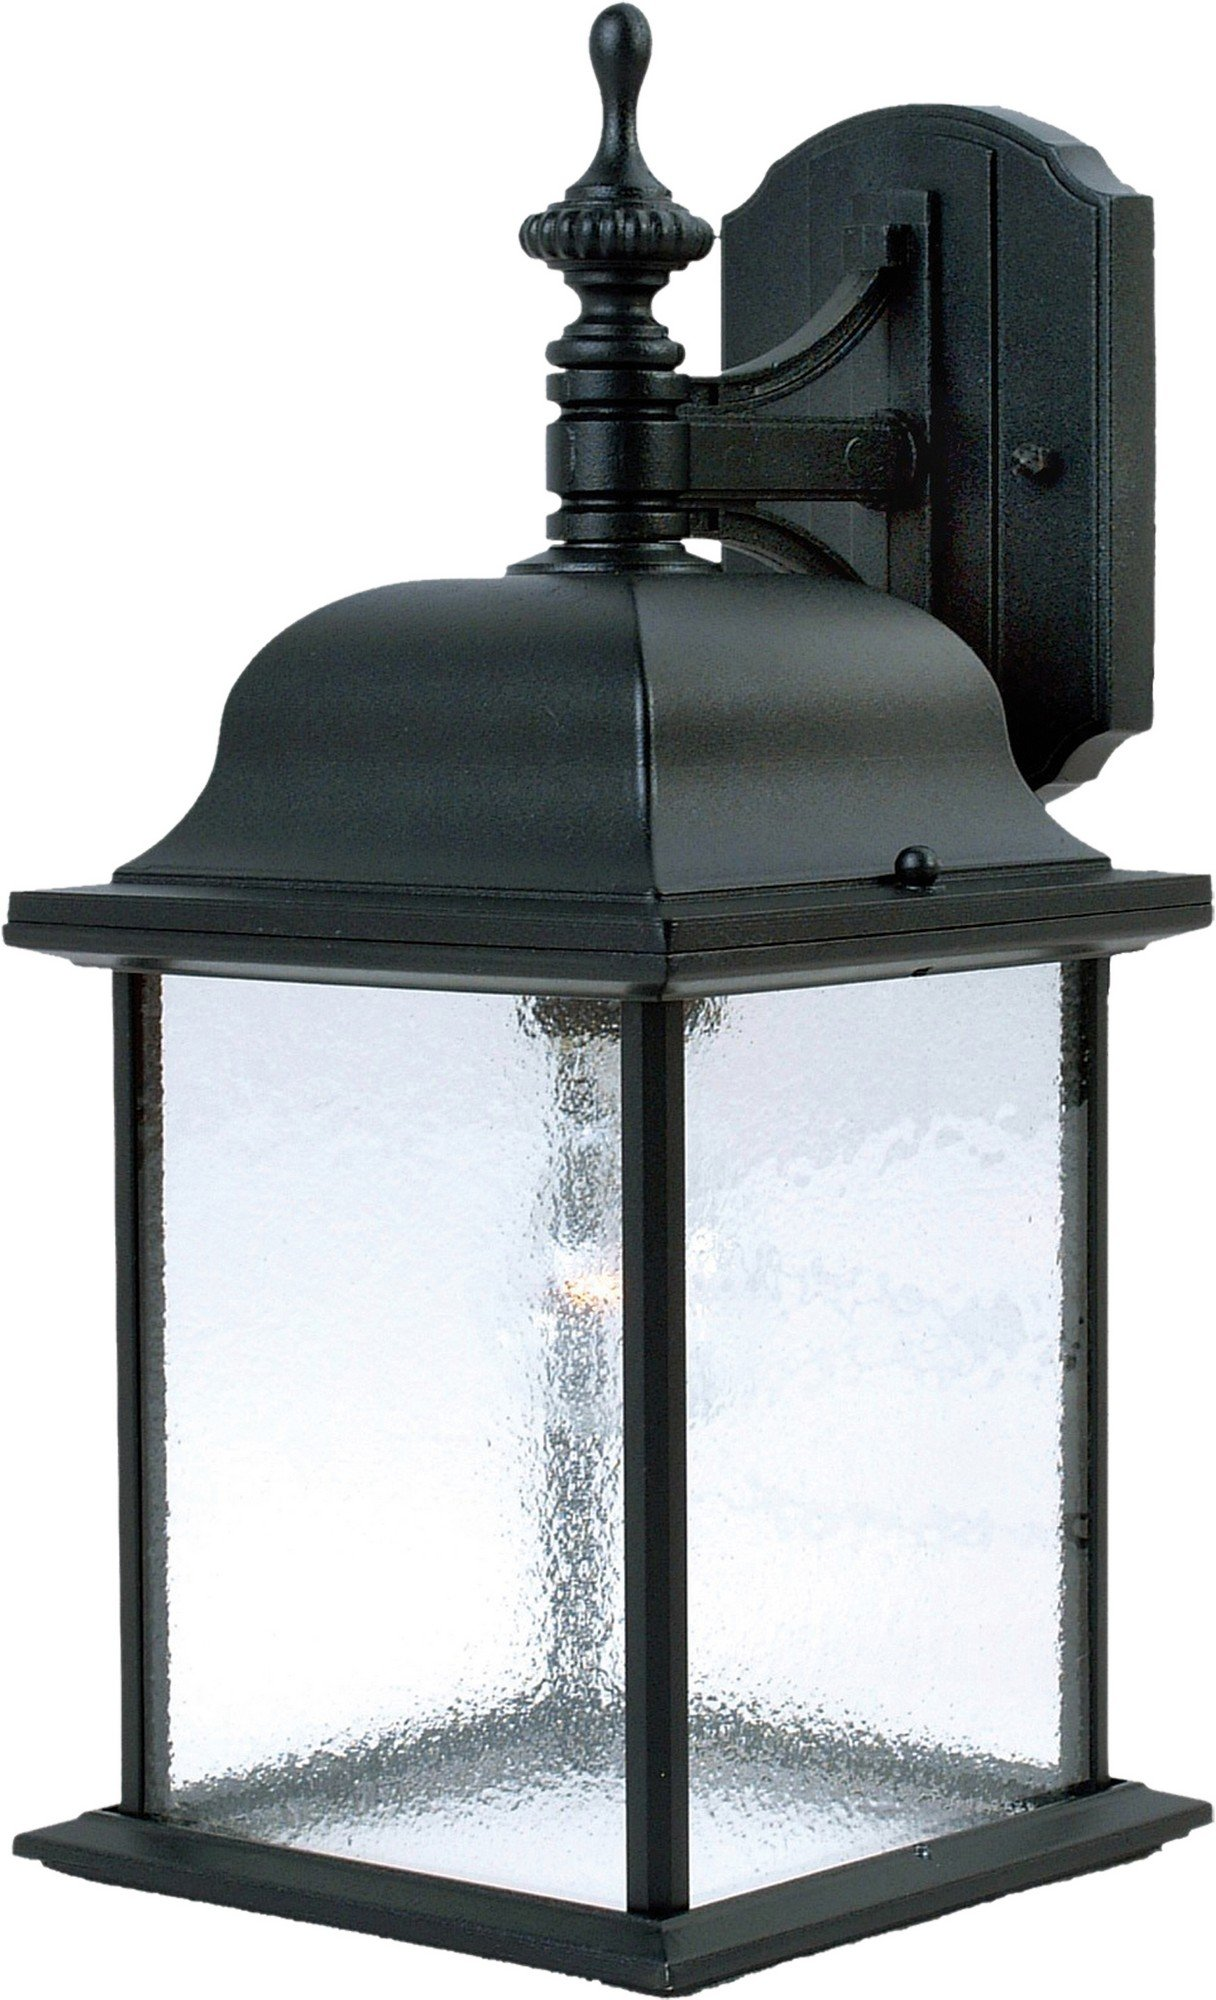 Maxim 1056BK Senator 1-Light Outdoor Wall Lantern, Black Finish, Seedy Glass, MB Incandescent Incandescent Bulb , 100W Max., Dry Safety Rating, Standard Dimmable, Glass Shade Material, 5750 Rated Lumens